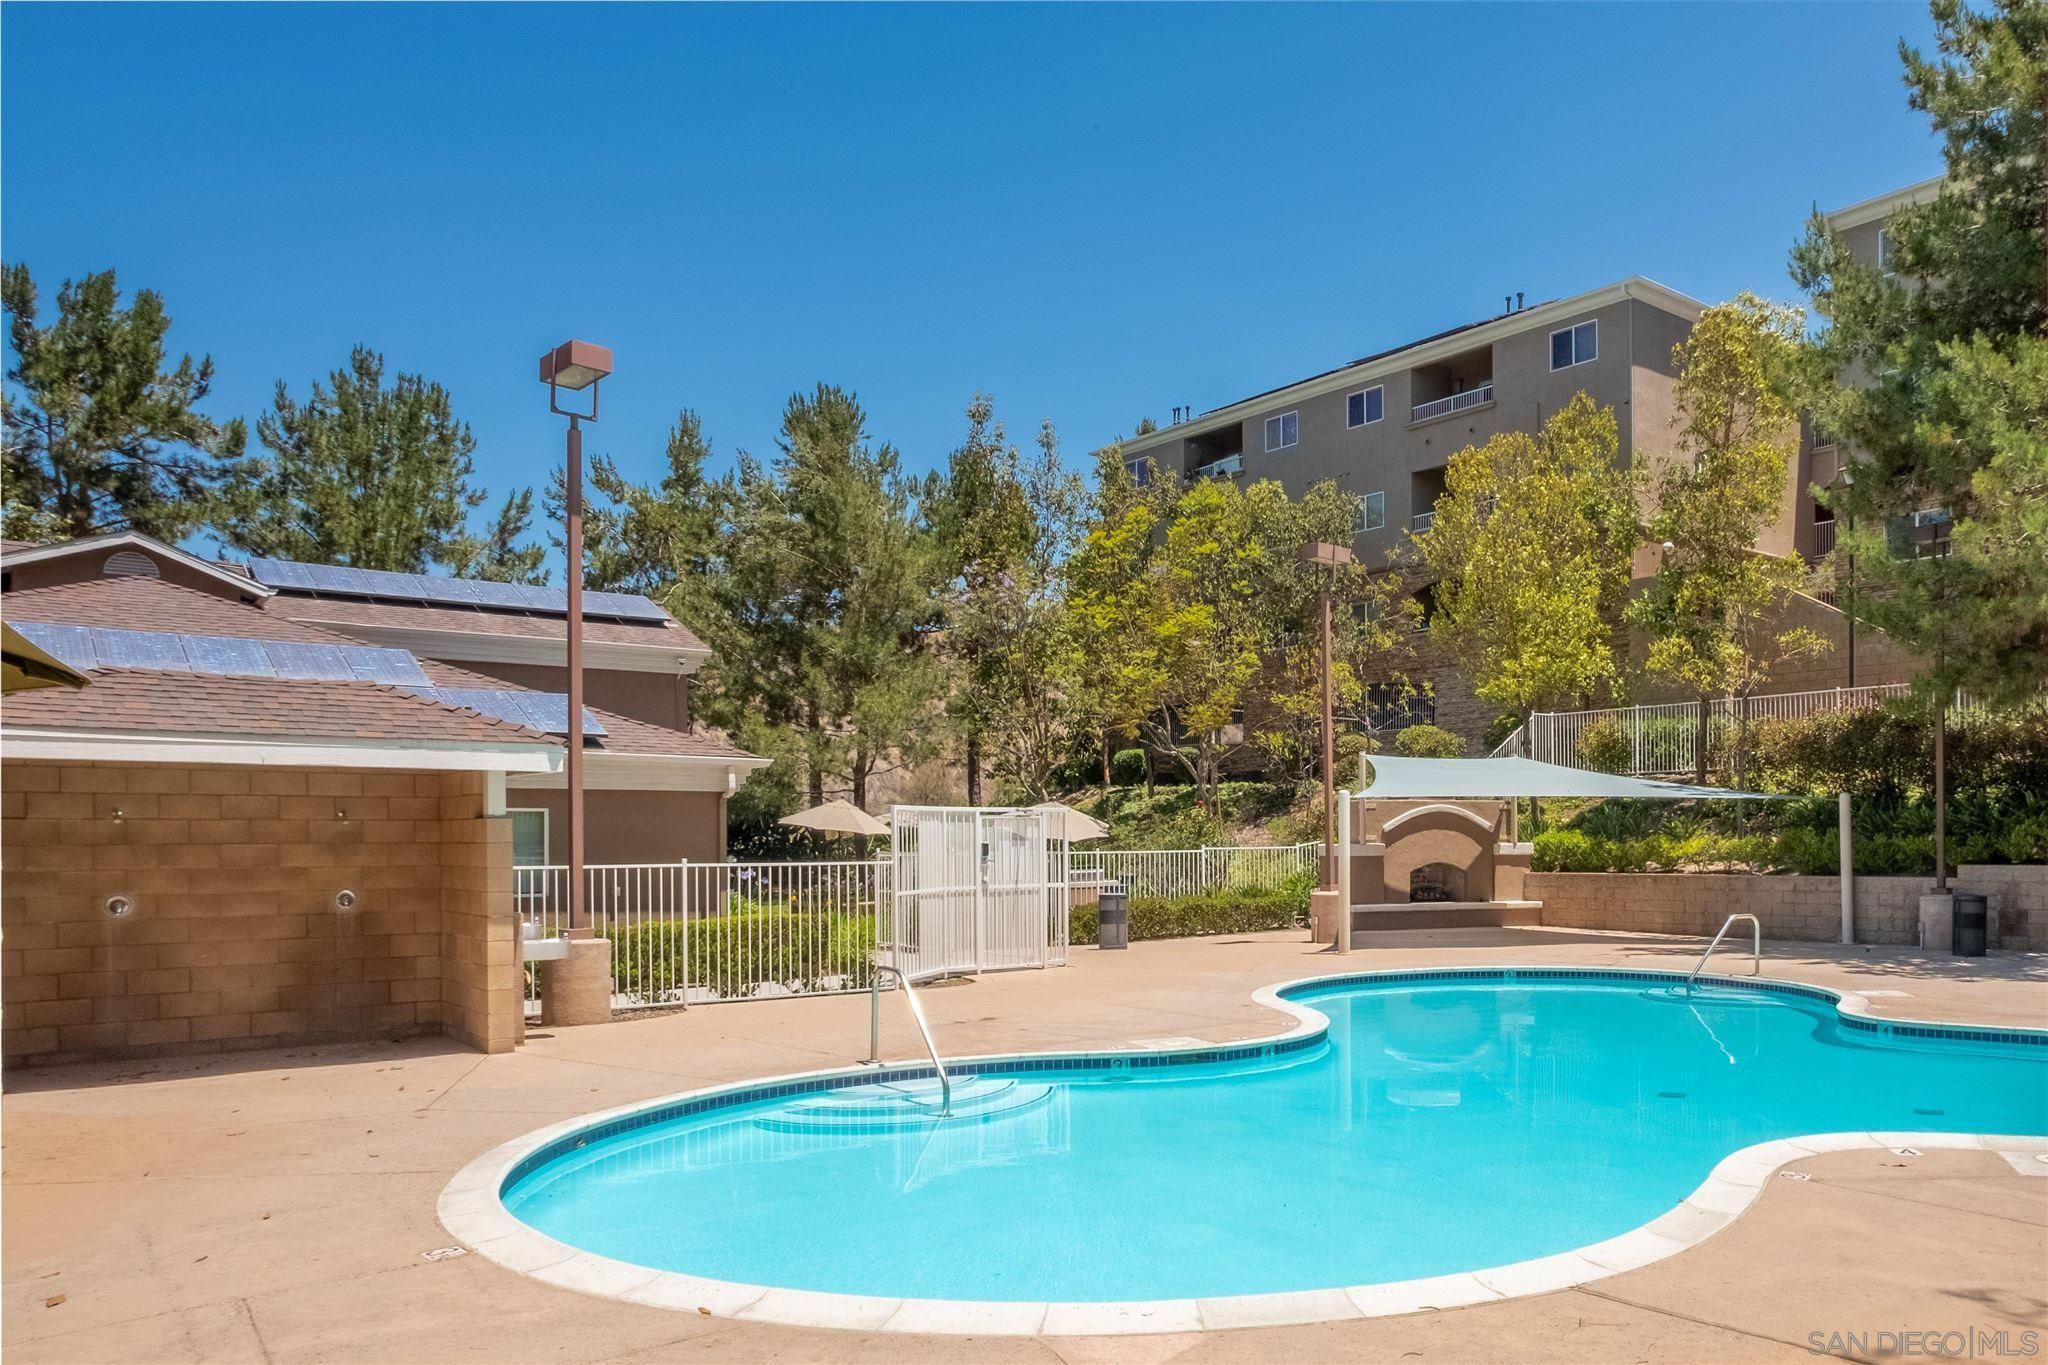 Main Photo: SAN DIEGO Condo for sale : 2 bedrooms : 7671 MISSION GORGE RD #109